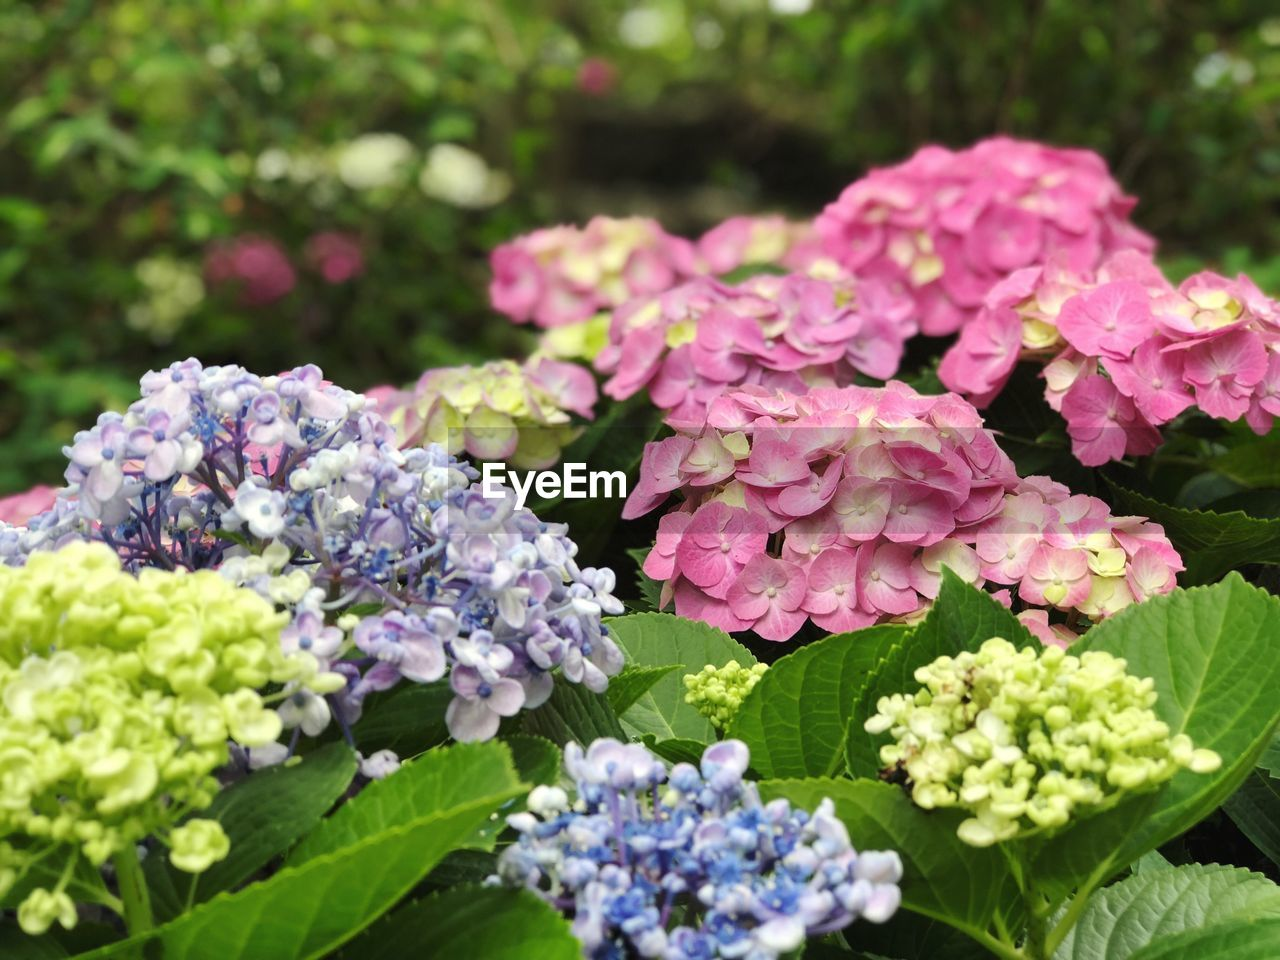 flowering plant, flower, beauty in nature, plant, freshness, vulnerability, fragility, growth, close-up, petal, inflorescence, flower head, nature, pink color, plant part, day, leaf, hydrangea, no people, outdoors, lilac, bunch of flowers, springtime, purple, flower arrangement, bouquet